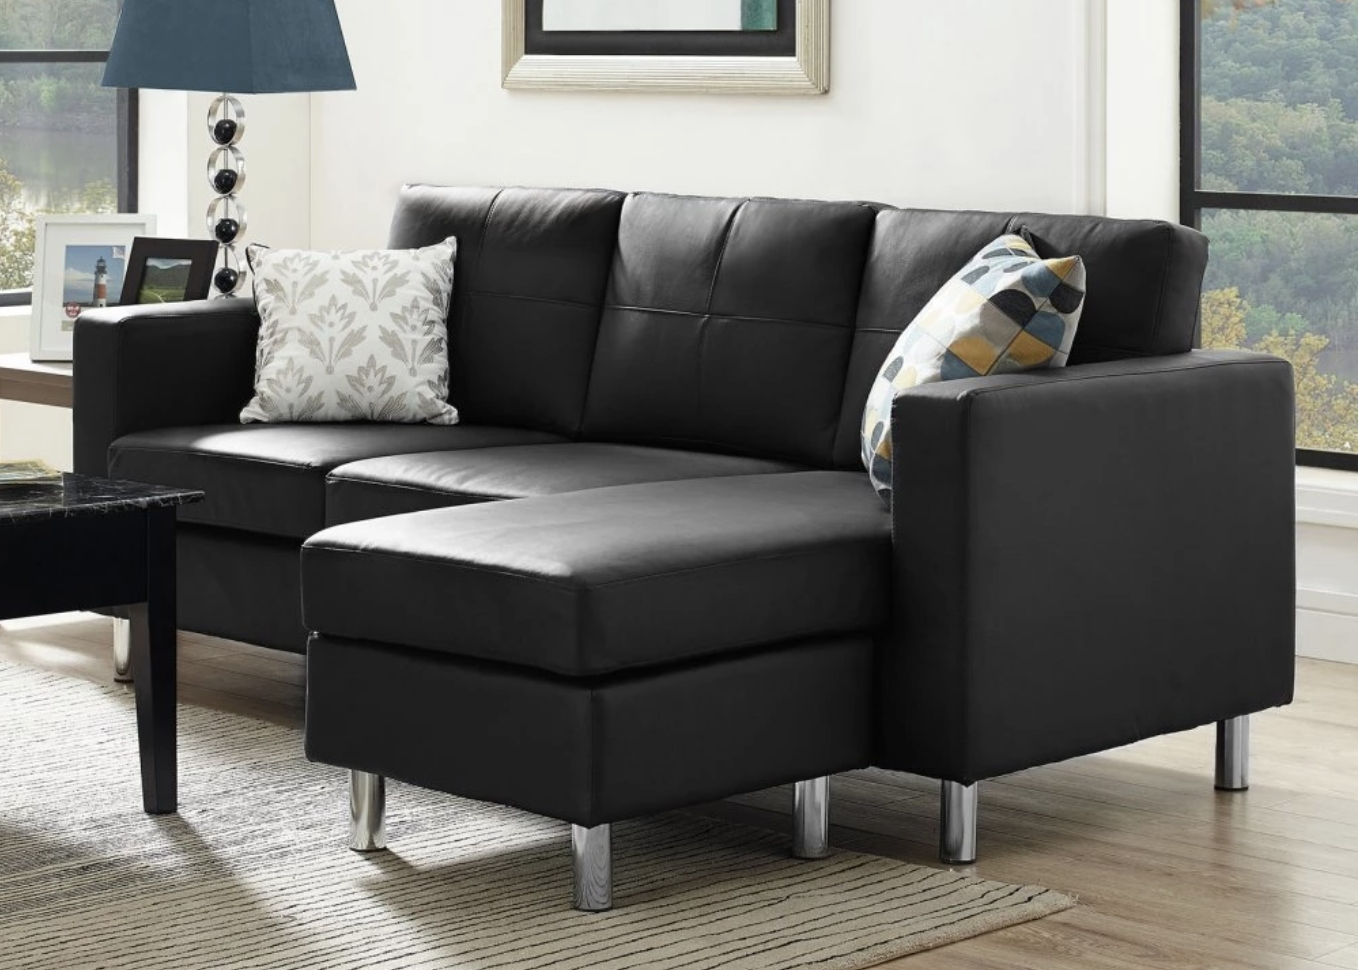 Sectional Sofas For Small Places Throughout Best And Newest 75 Modern Sectional Sofas For Small Spaces (2018) (View 16 of 20)